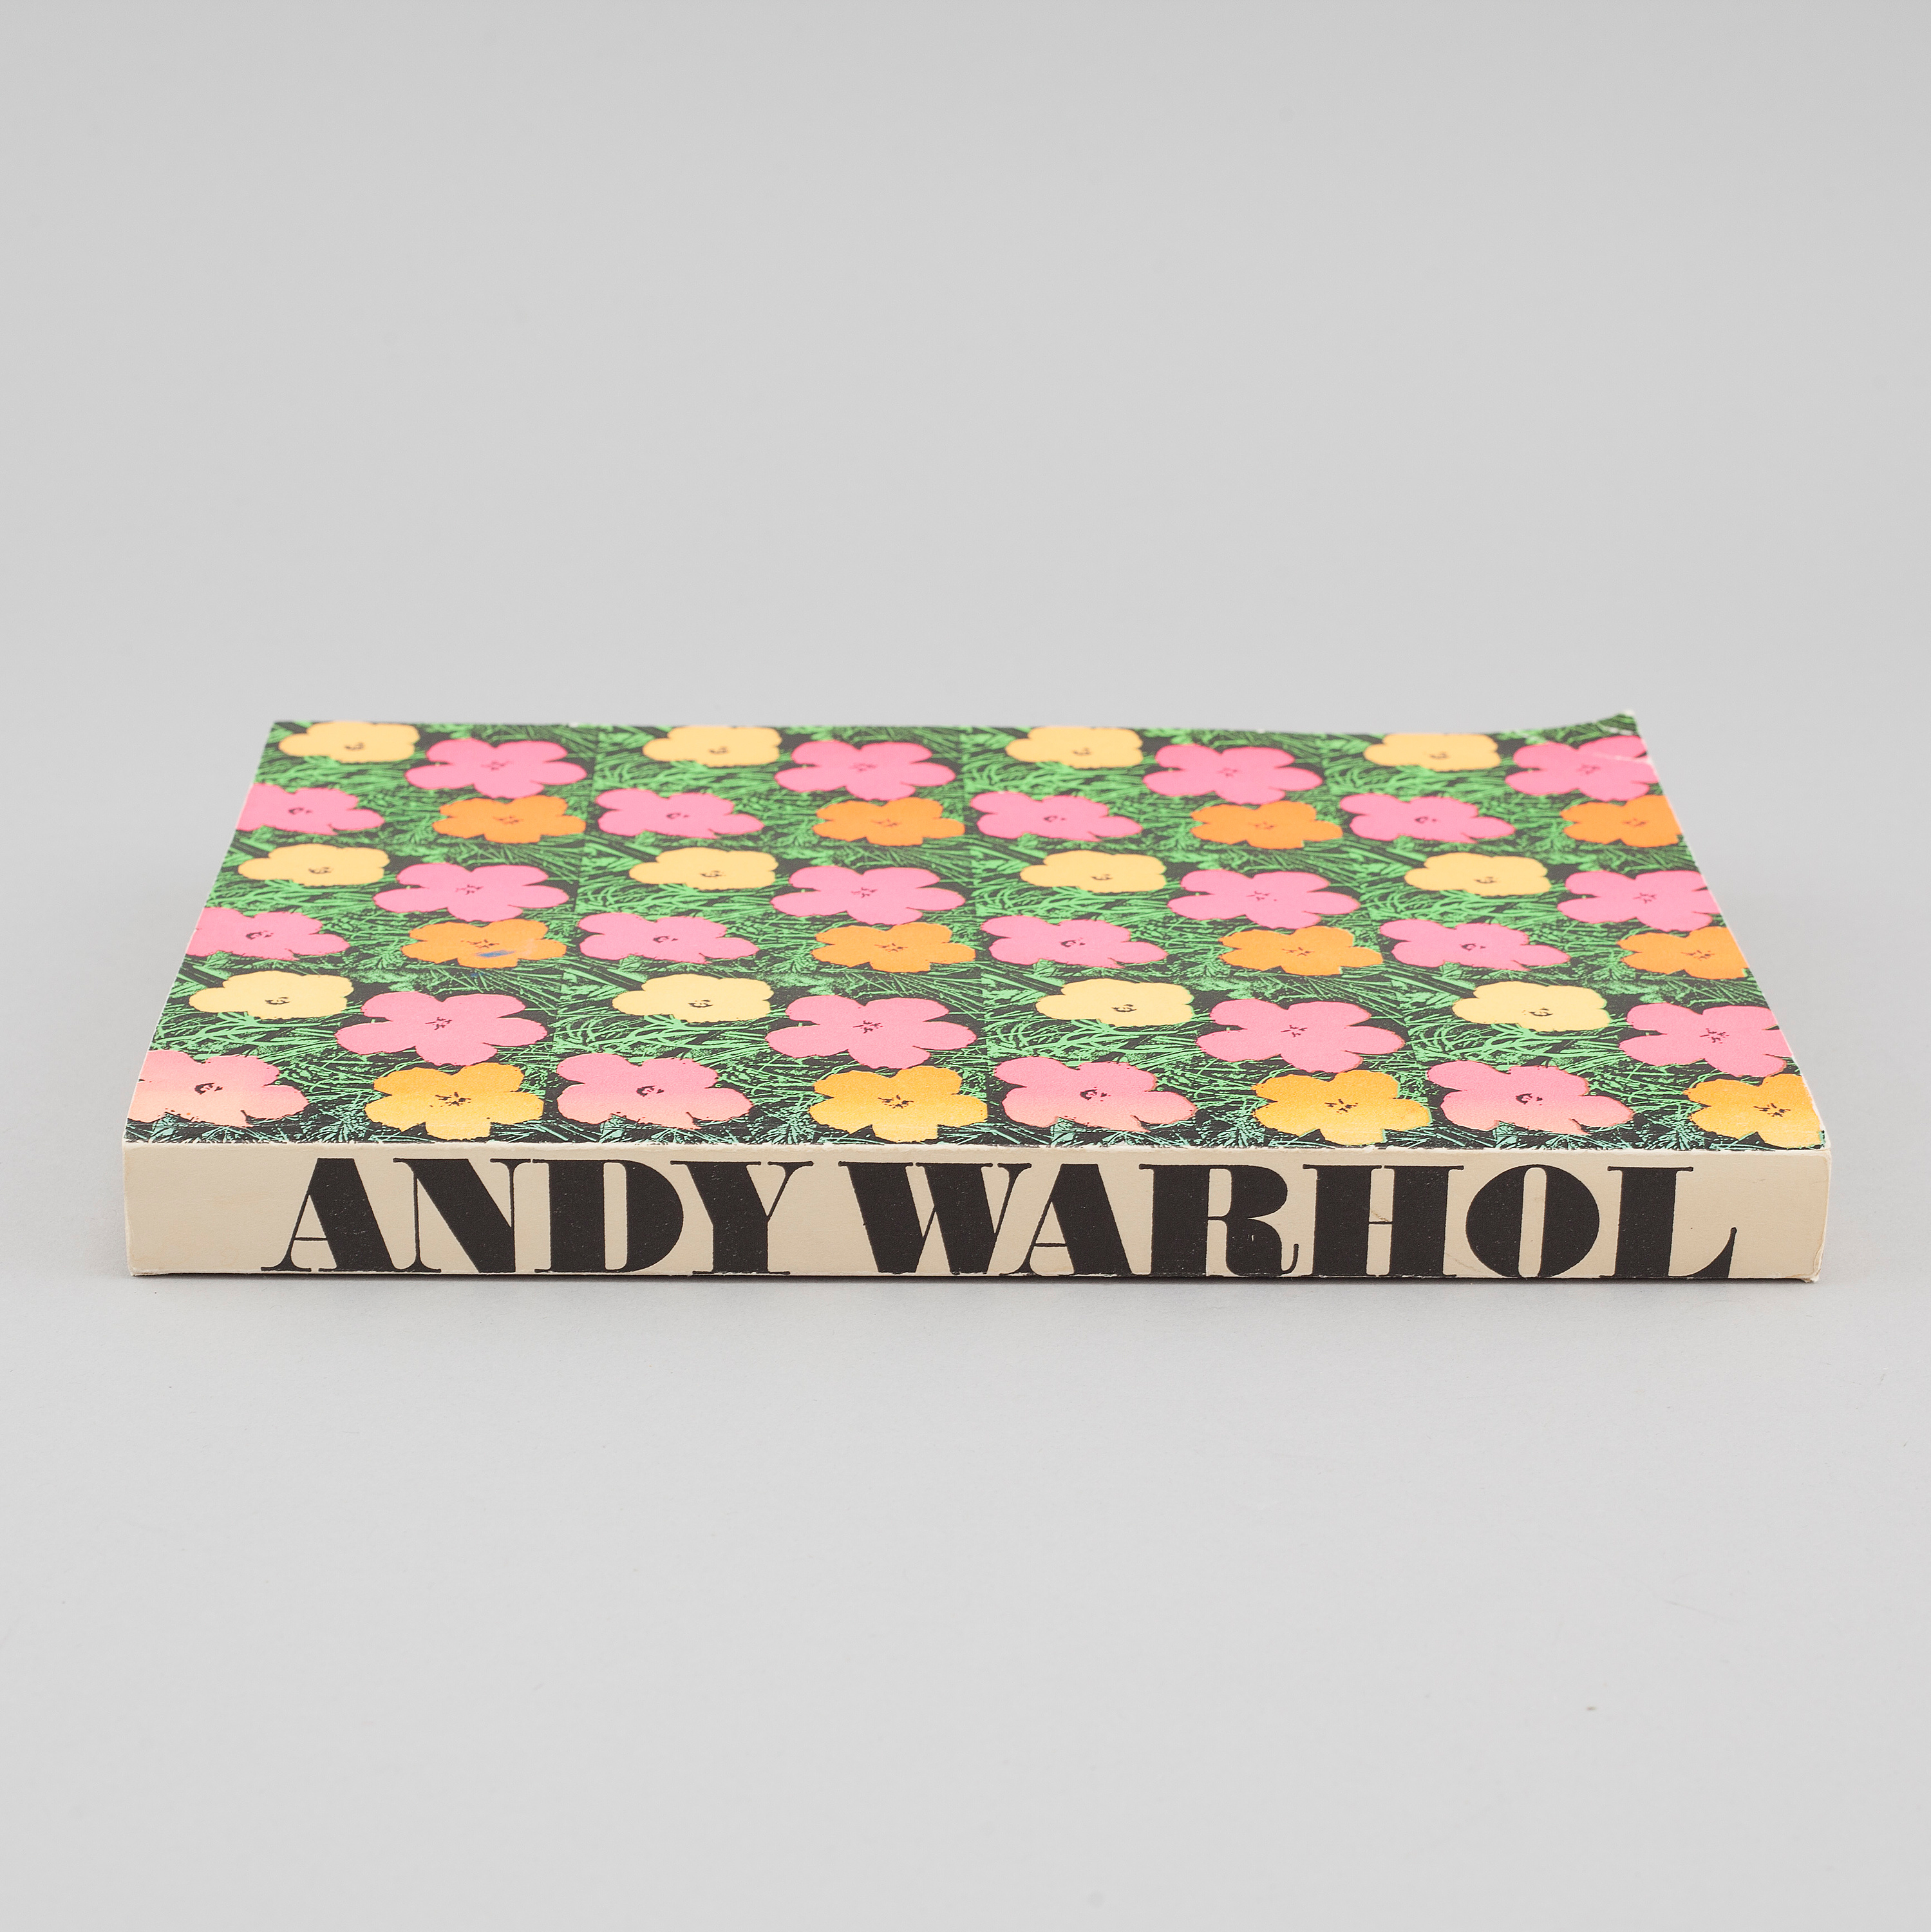 A Catalouge From And Exhibition About Andy Warhol At The